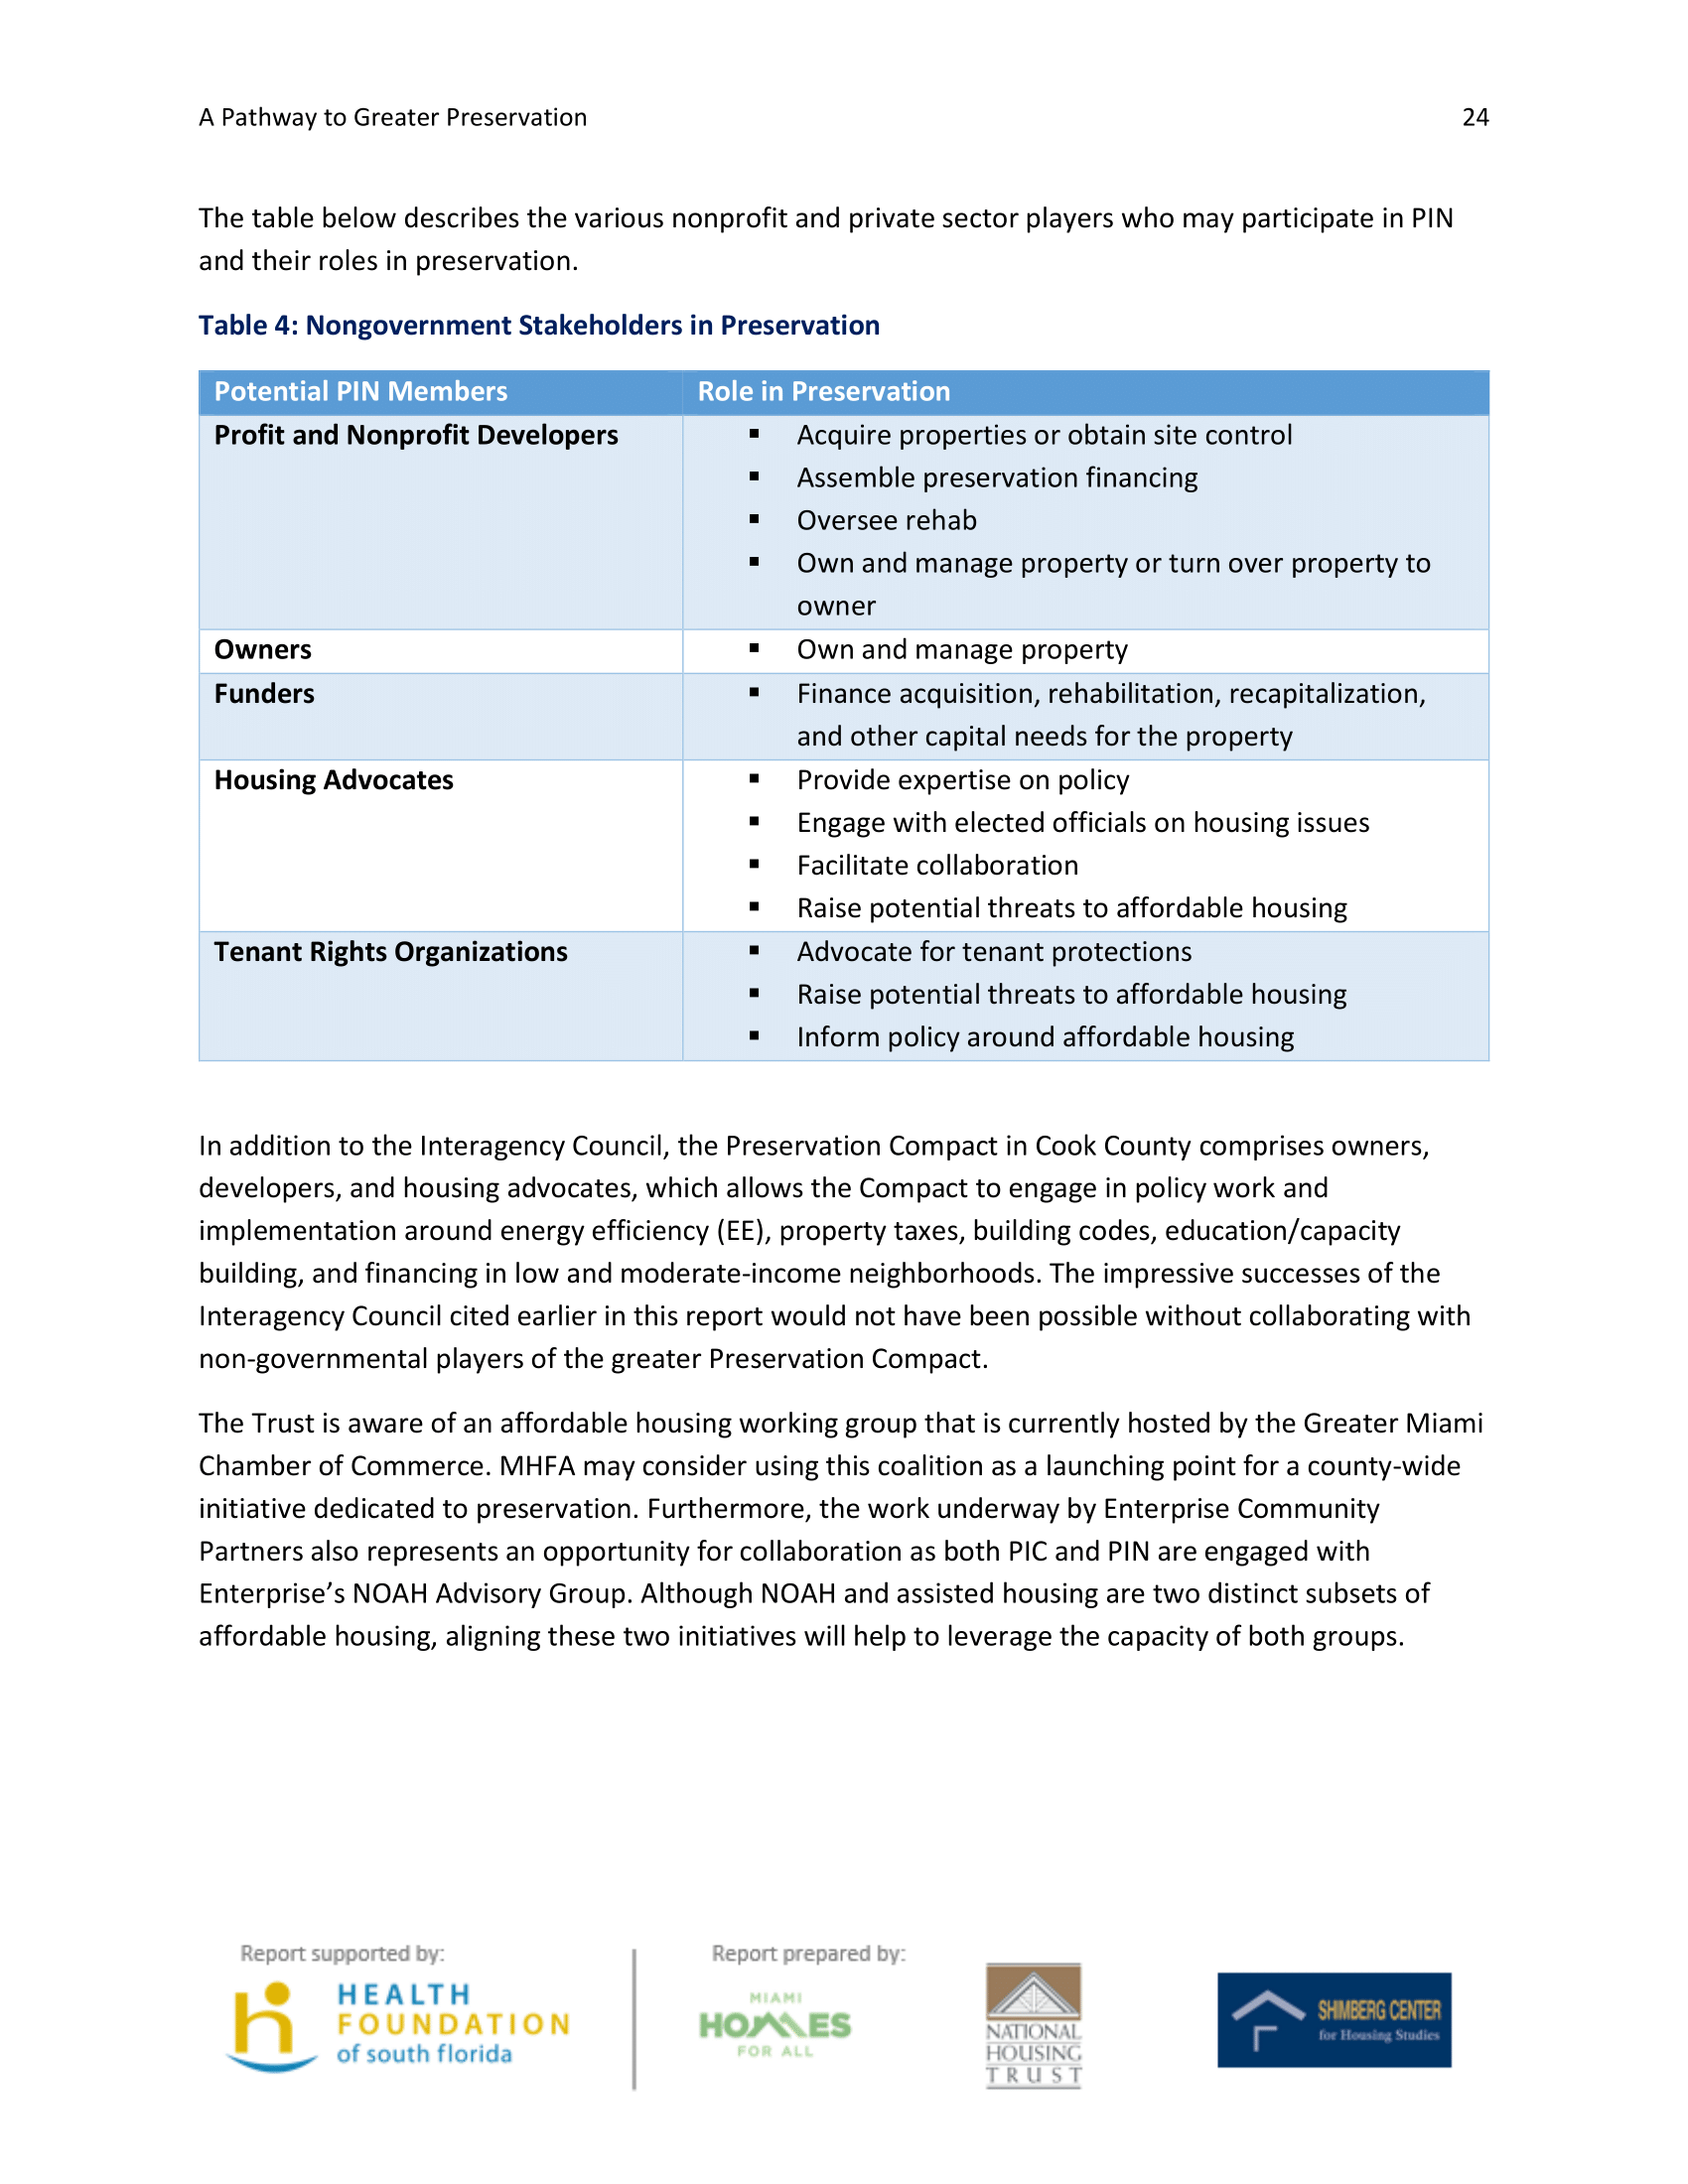 A Pathway to Greater Preservation - February 2018-32.png